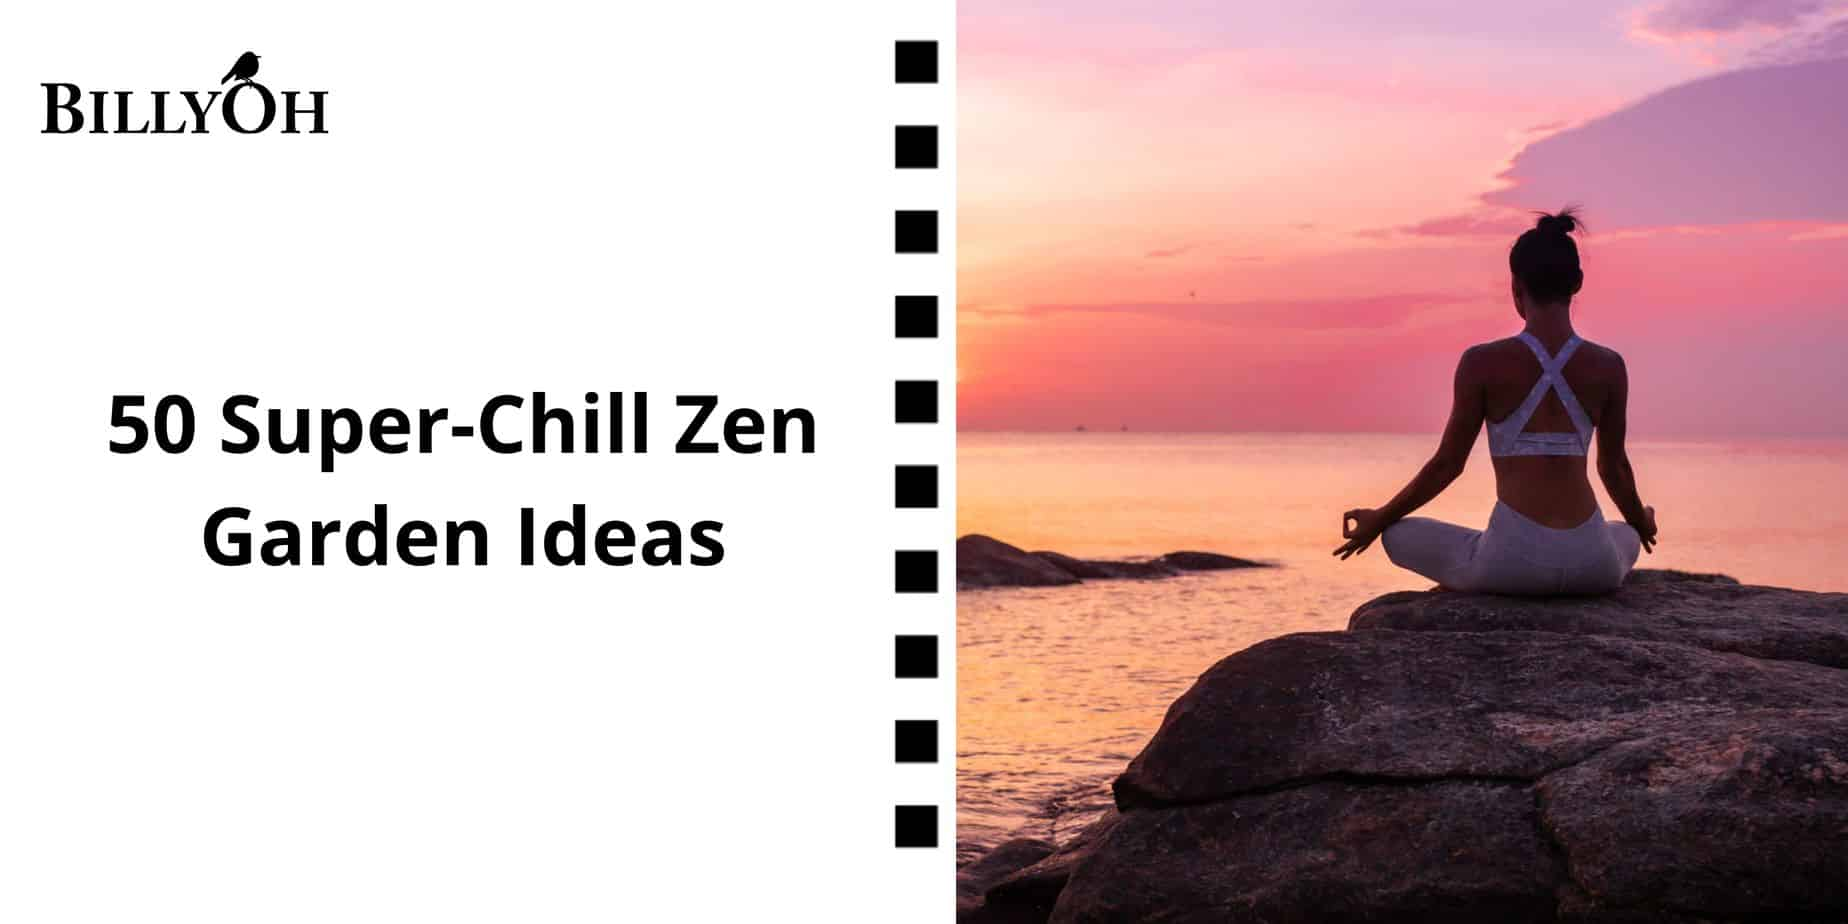 BillyOh 50 Zen Garden Ideas with woman in yoga pose by the sea at sunset